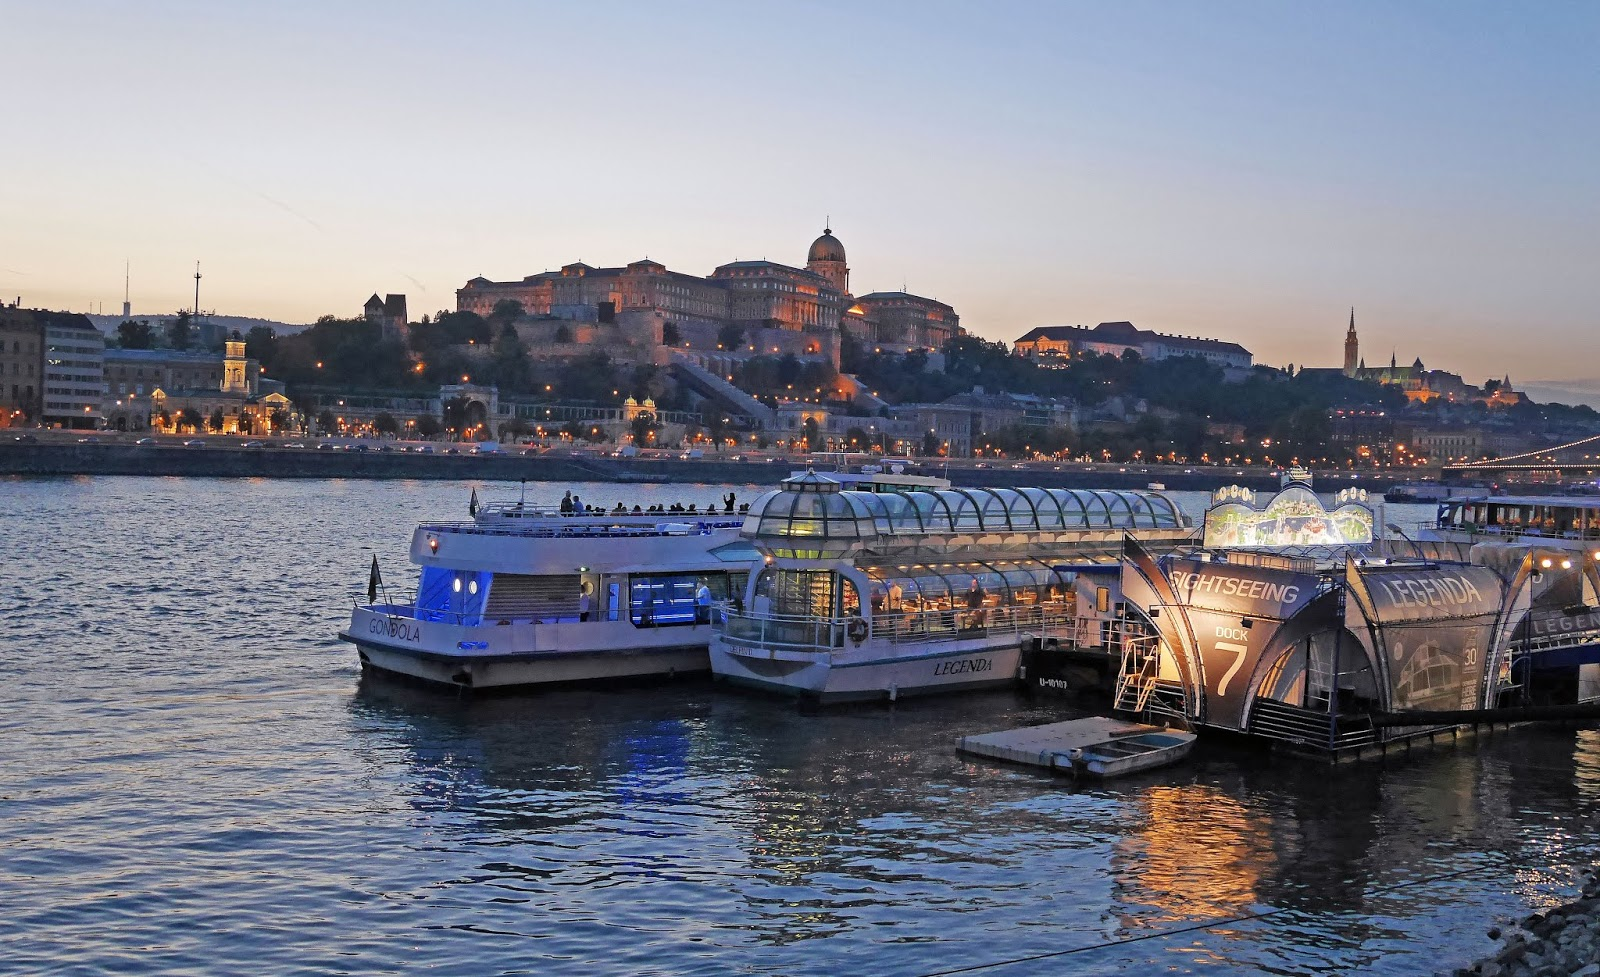 The boat dock for Legenda Cruises on the Danube, Budapest